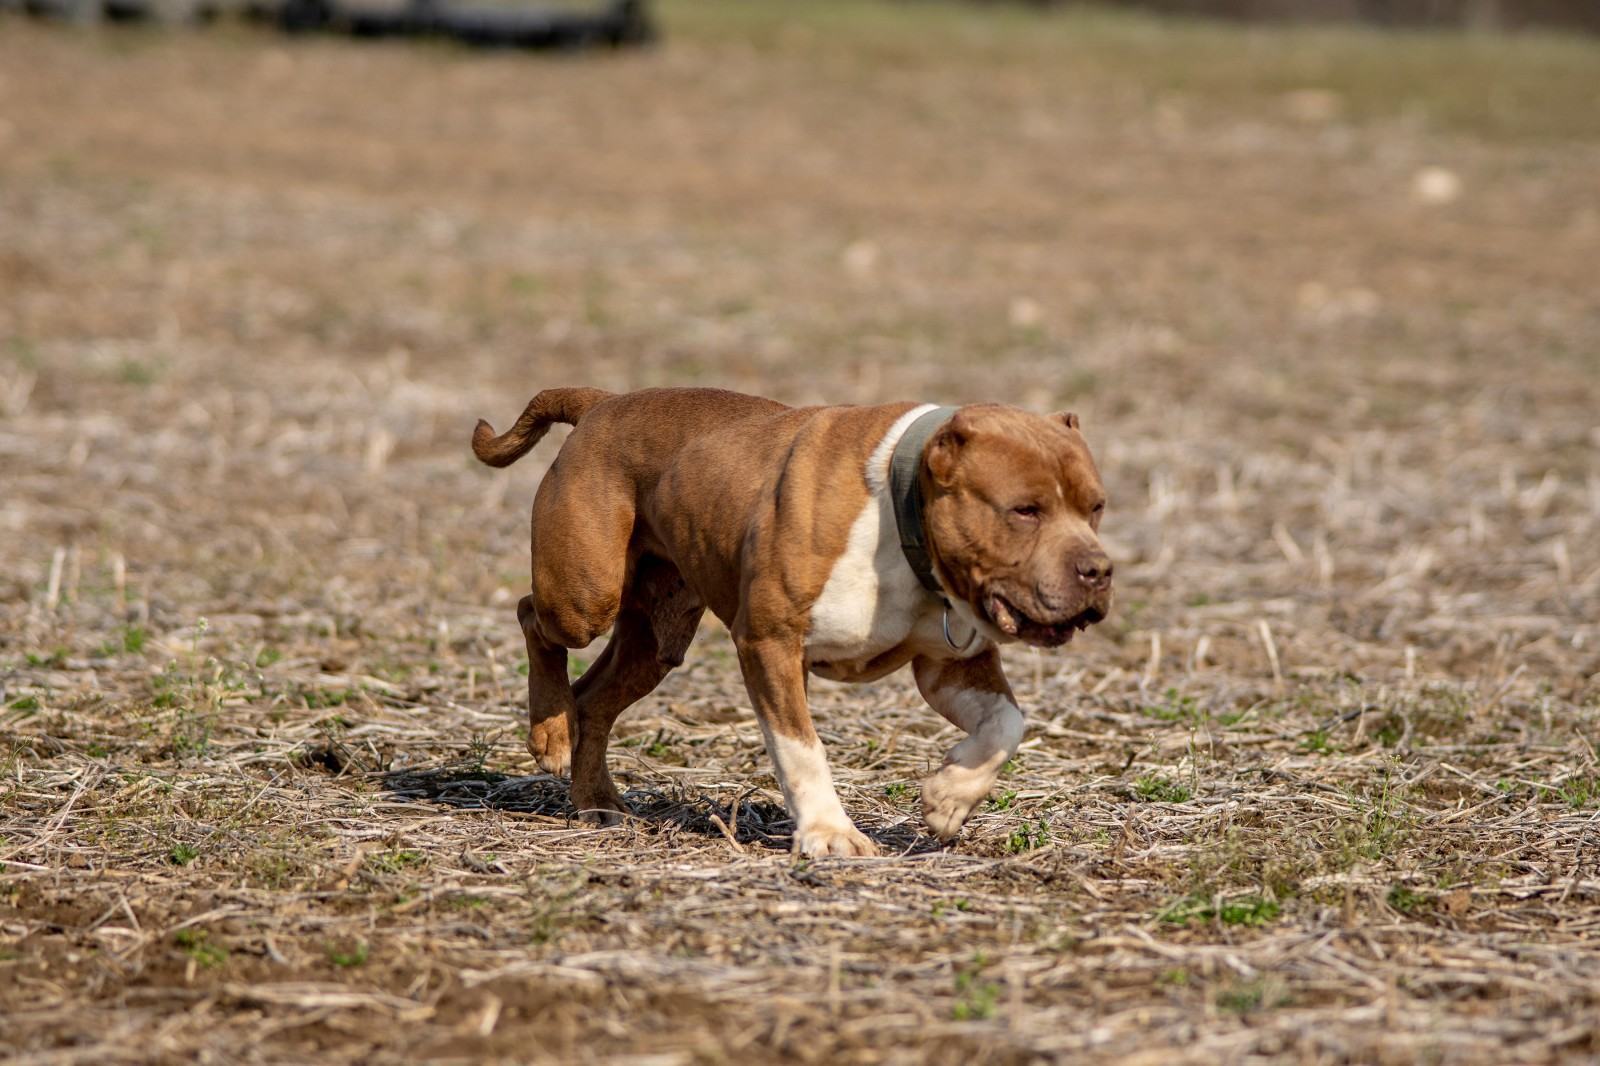 Unleashed Kennelz Taj Mahal, a red and white American Bully shows of his ripped physique as he struts through a field in early spring.